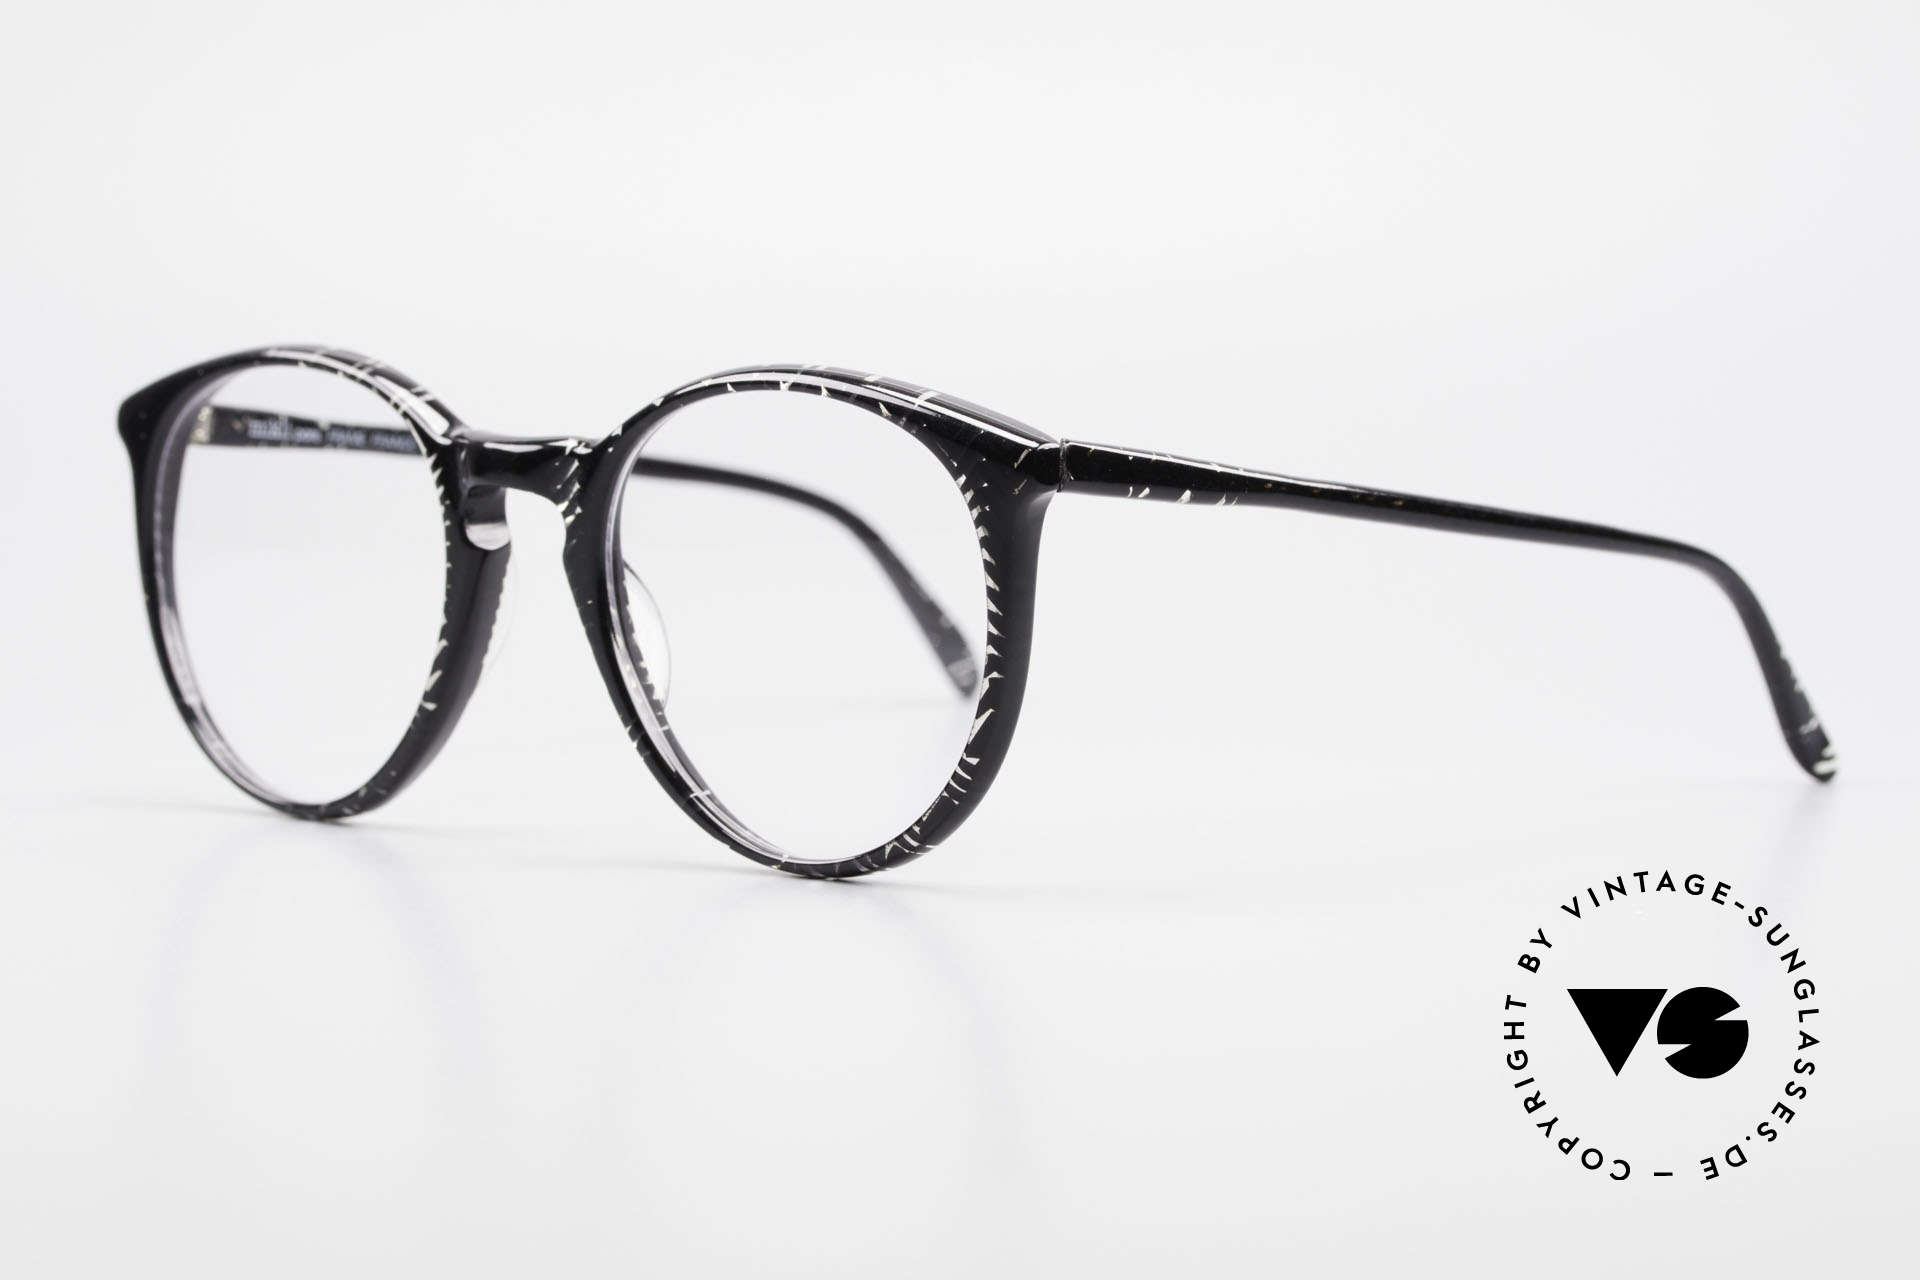 Alain Mikli 901 / 299 Panto Frame Black Crystal, handmade quality and 125mm width = SMALL size!, Made for Men and Women